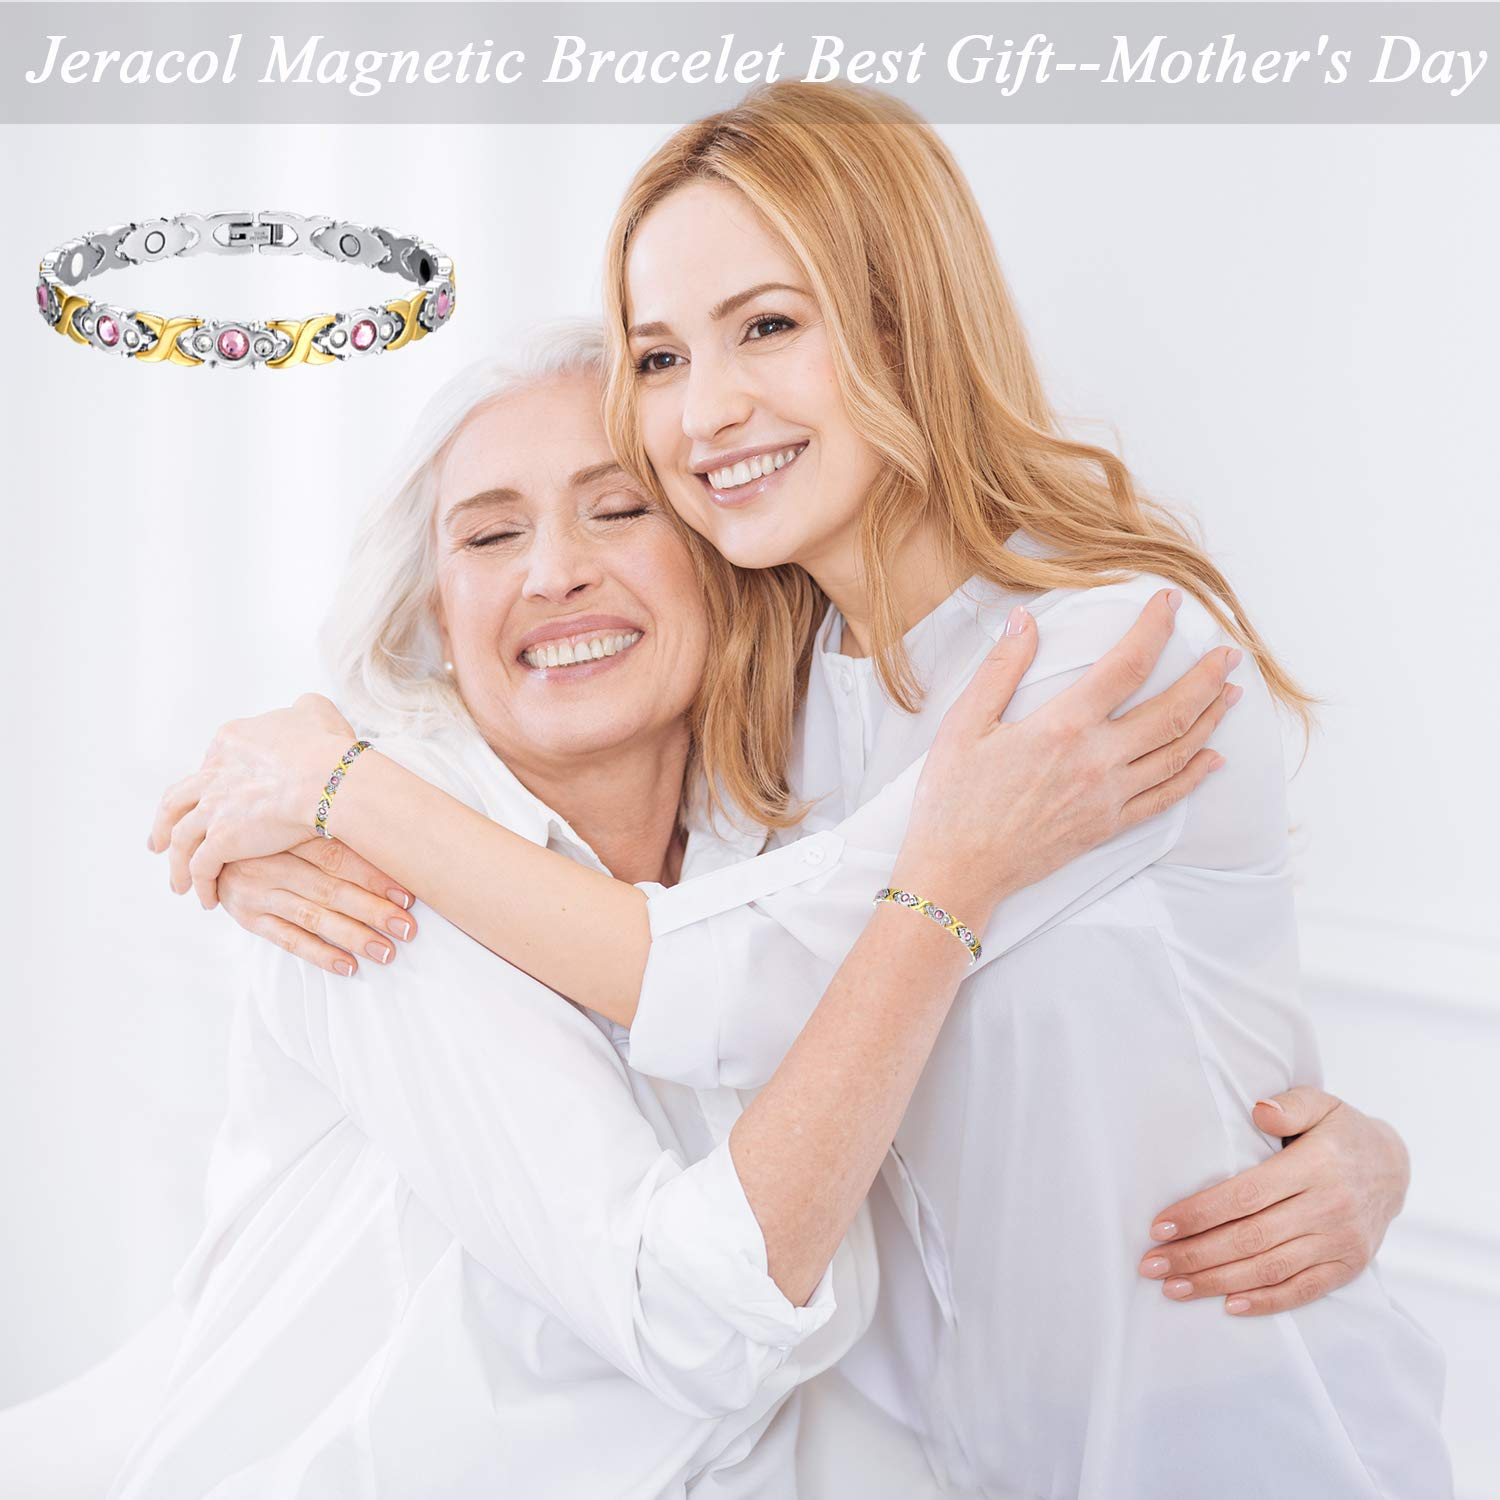 Magnetic Bracelet Sparkly Crystal Magnetic Therapy Bracelet Pain Relief for Arthritis Titanium Magnetic Bracelets Health Care Best Gift for Women Mother's Day with Remove Tool&Gift Box